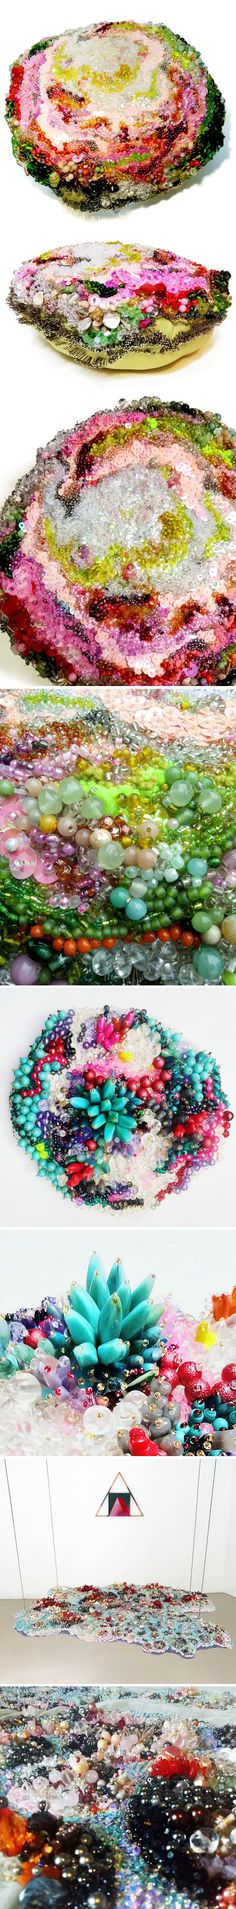 bead and sequin covered sculpture by louise meuwissen <3 !!!